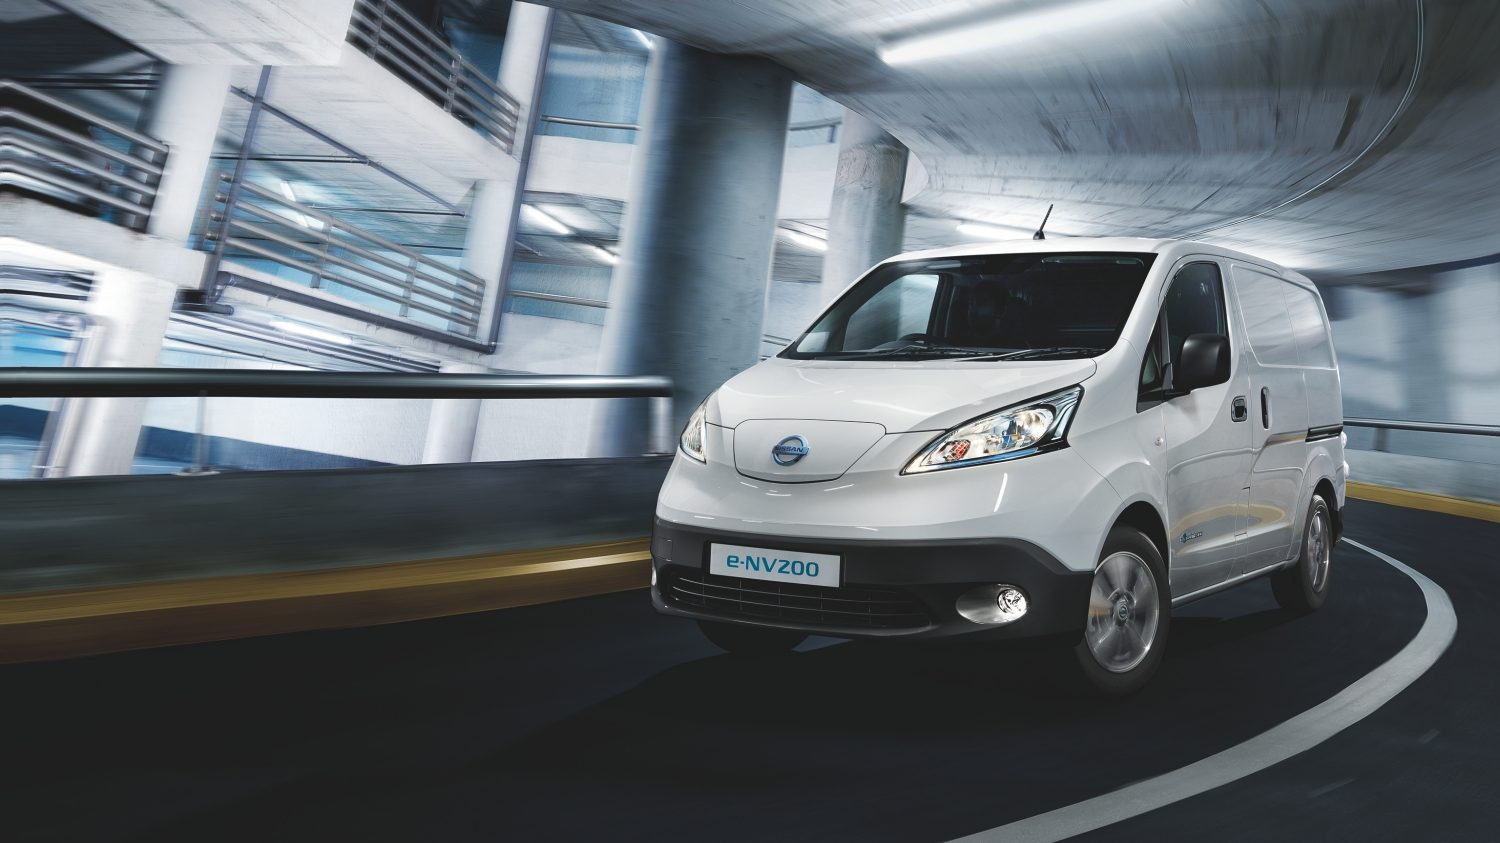 NISSAN e-NV200 WEISS – Vista frontale in curva